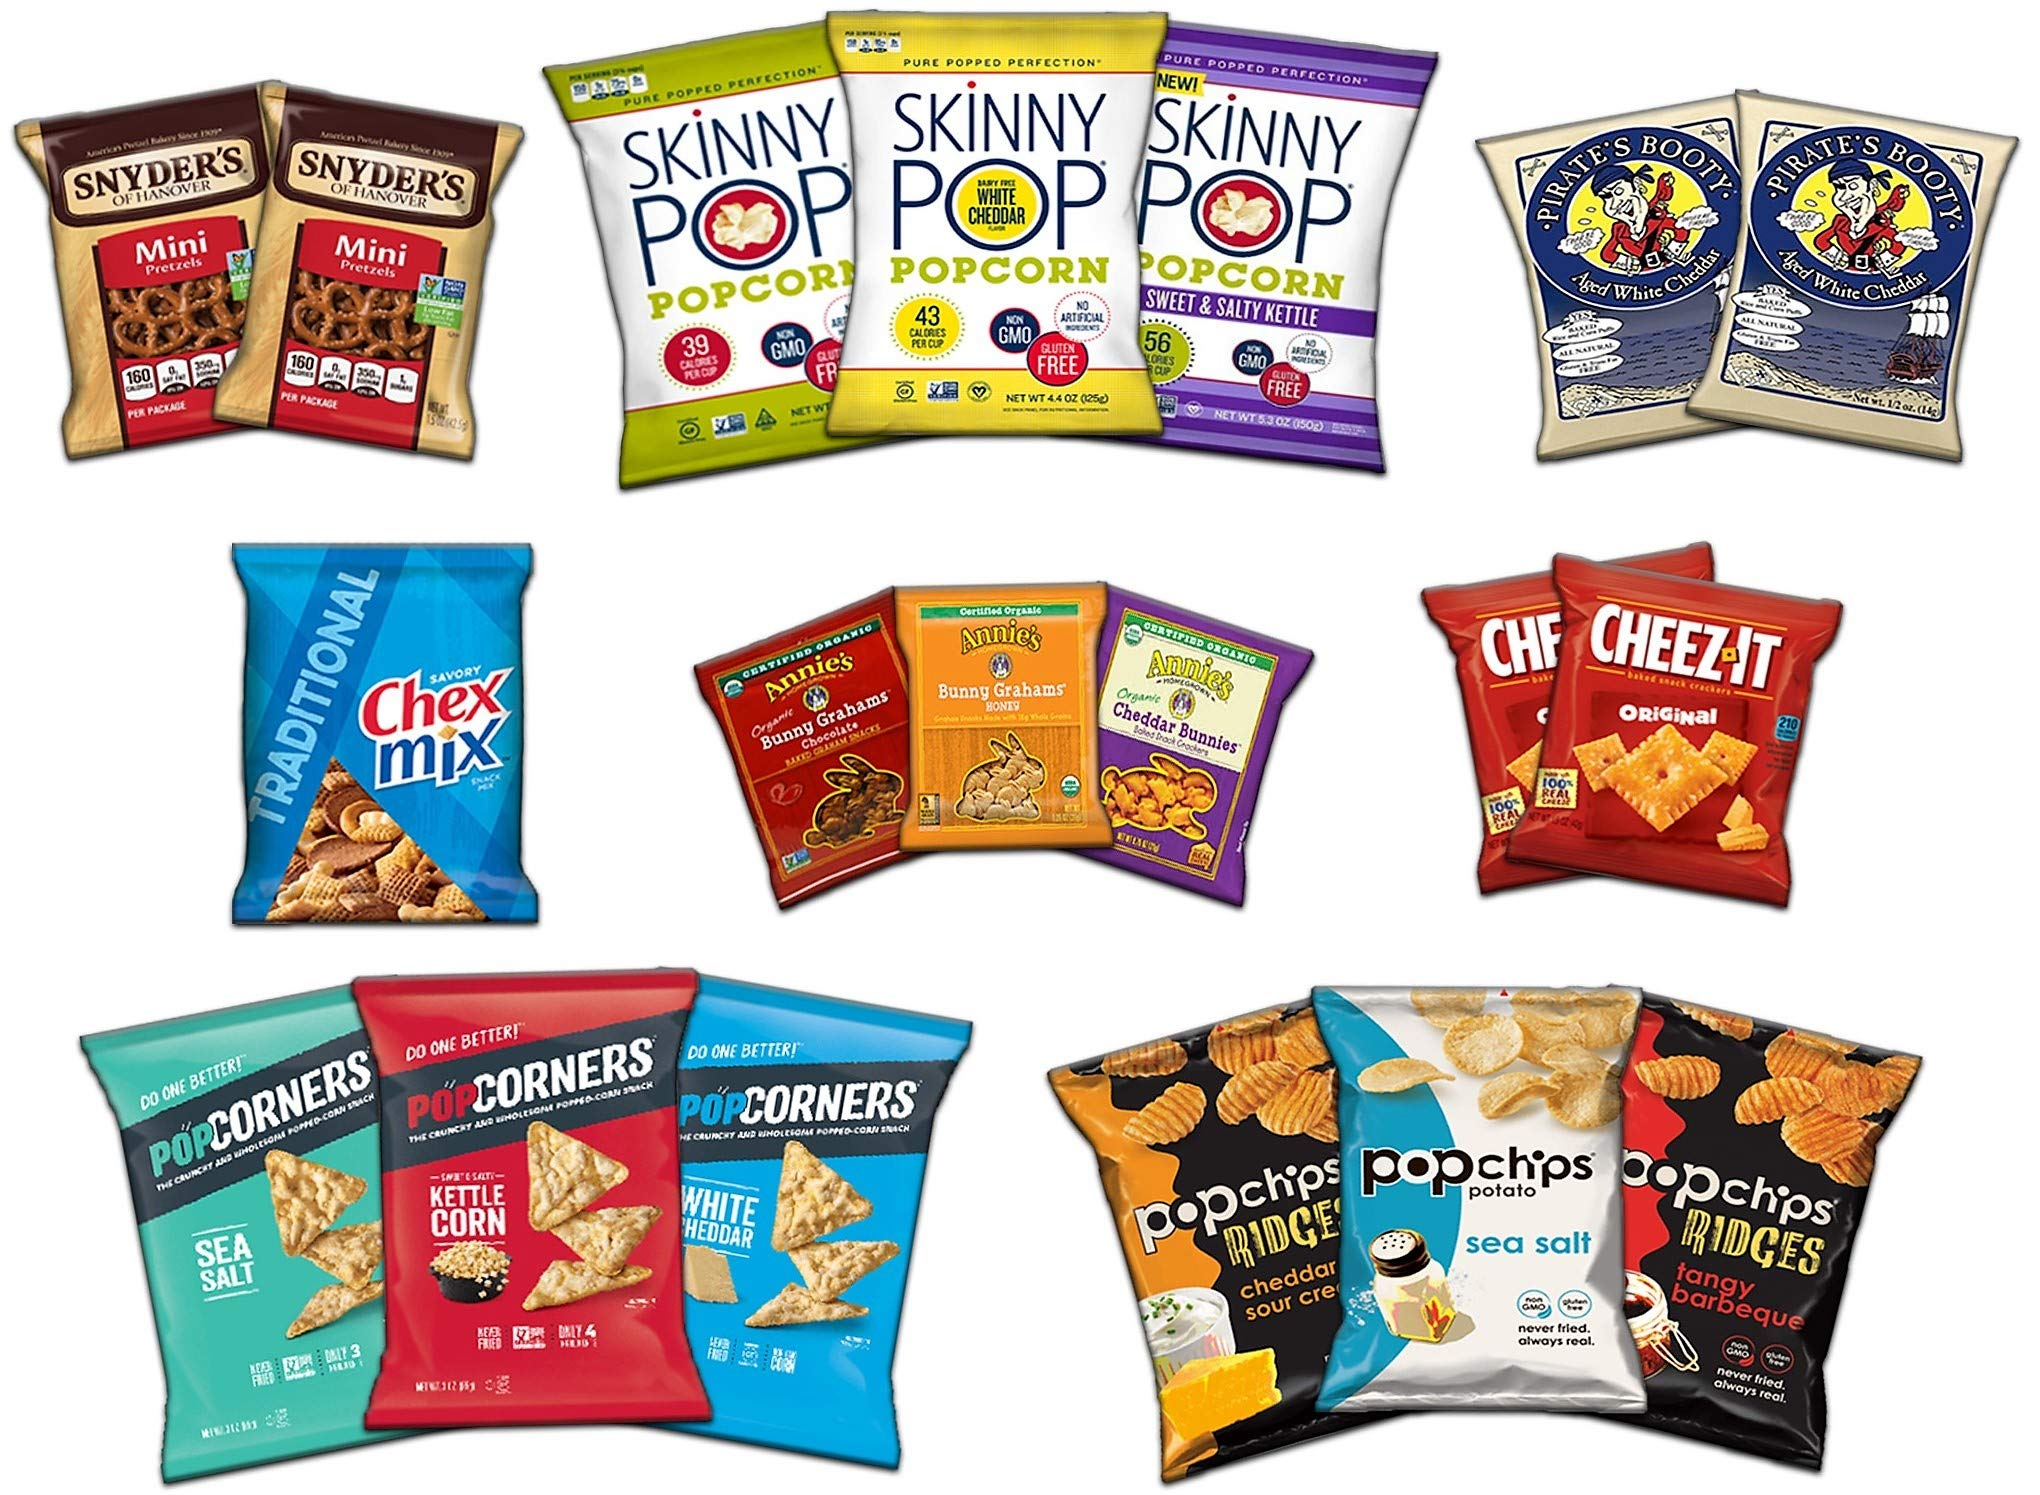 Ultimate Snack Assortment Care Package - Chips, Crackers, Cookies, Nuts, Bars - School, Work, Military or Home (50 Pack) by Custom Treats (Image #2)